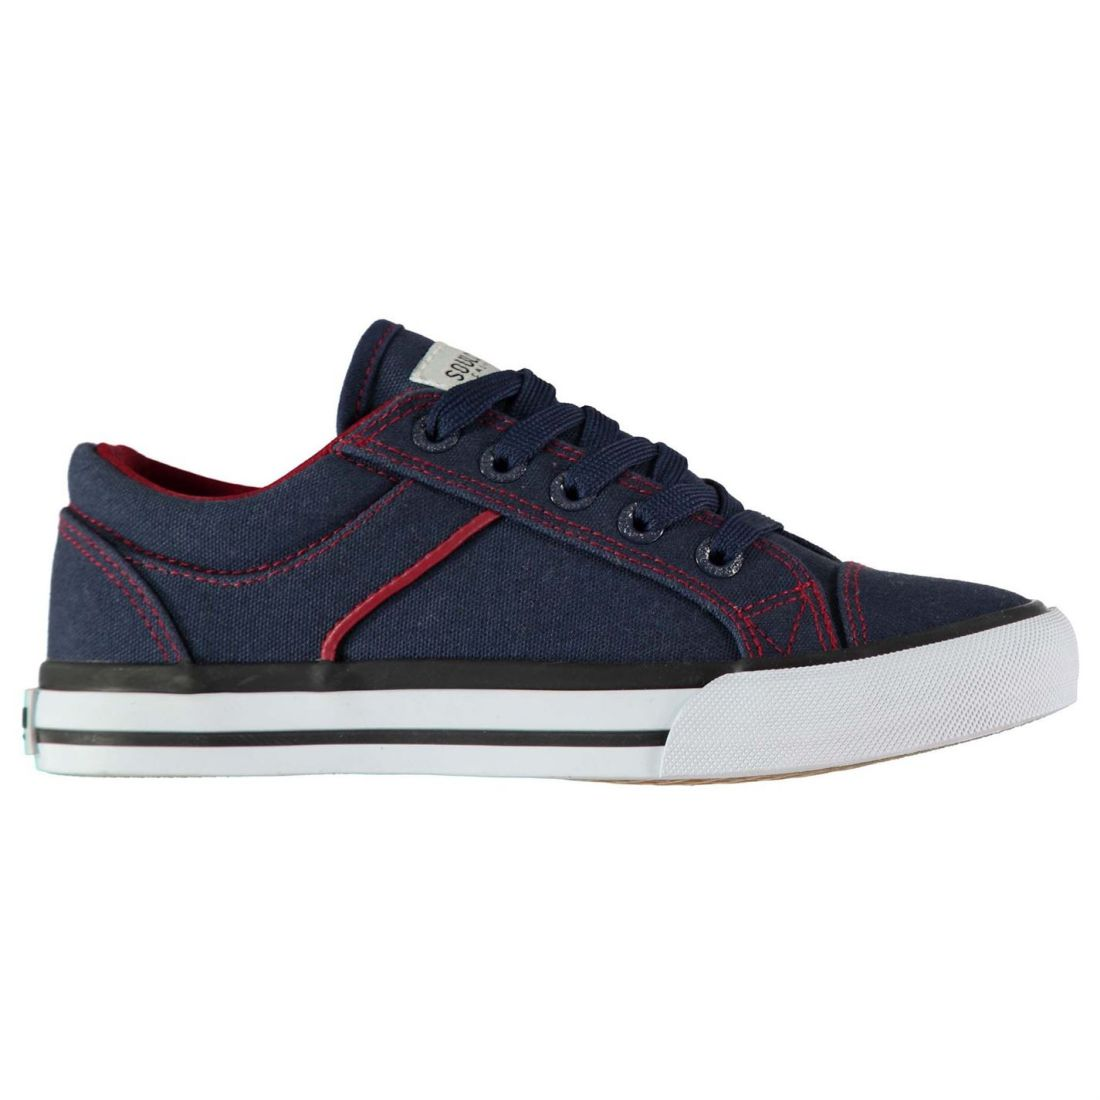 SoulCal Kids Cal Asti Cvs Lw Childs Canvas Low